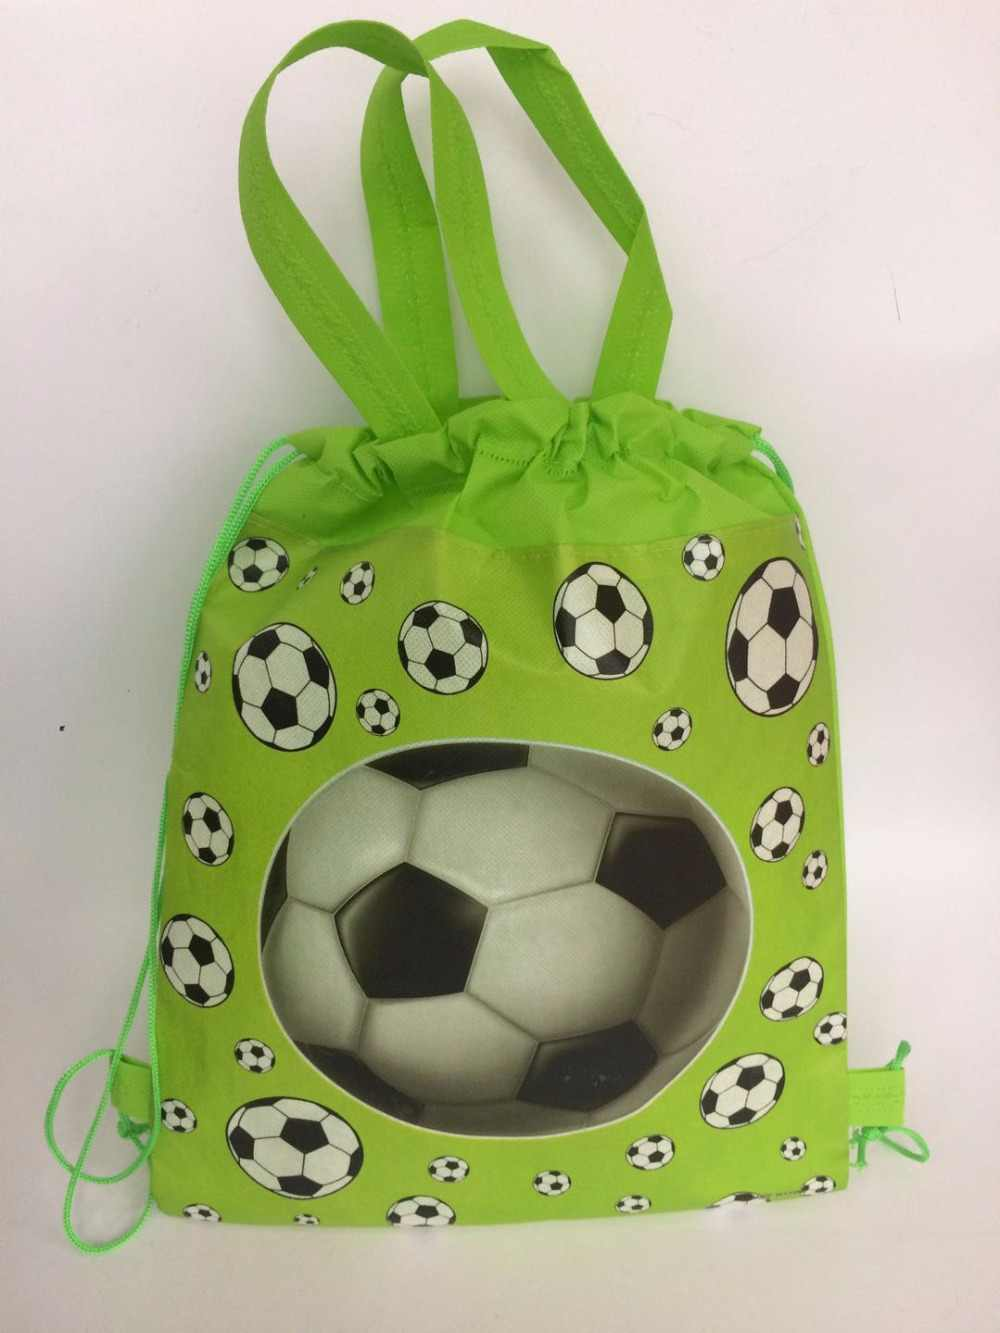 Childrens Backpack Footballl School Bag For Runner Waterproof Shoe Kids Gift Birthday